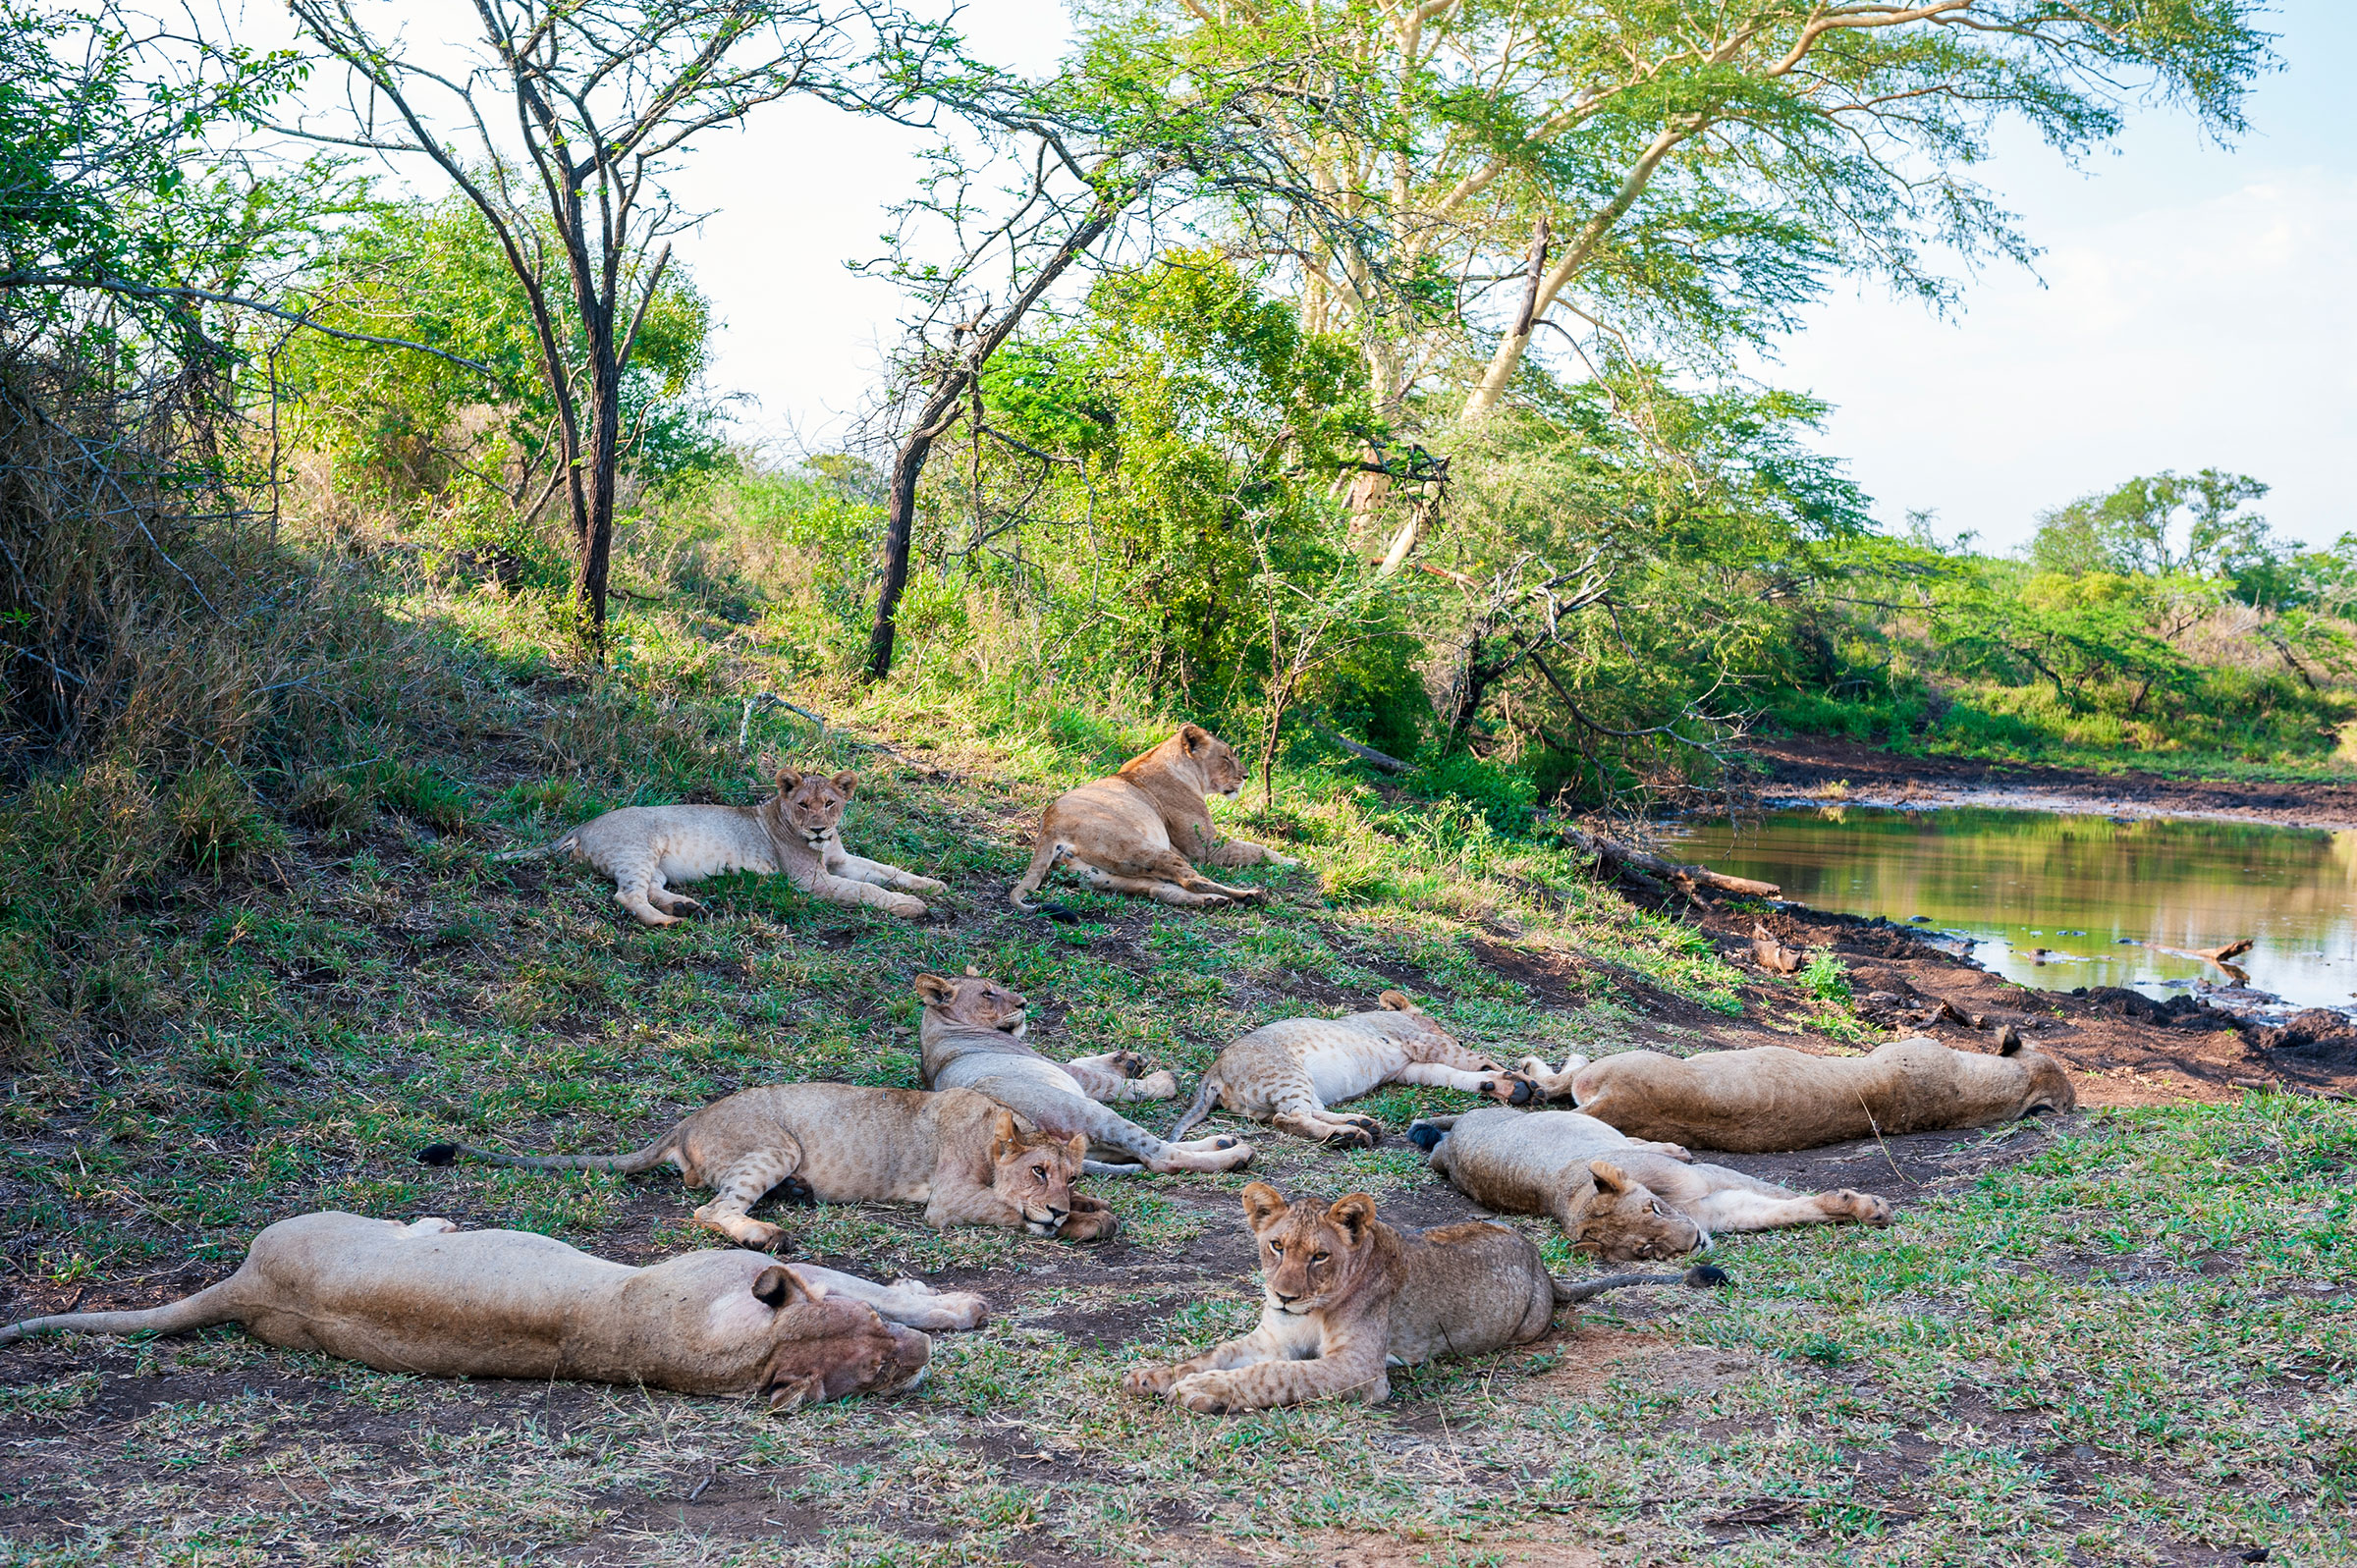 A honour of lions during Thanda Safari Lodge, a 14 000-hectare Big Five private diversion haven owned by Swedish IT businessman Dan Olofsson in northern Zululand, South Africa.